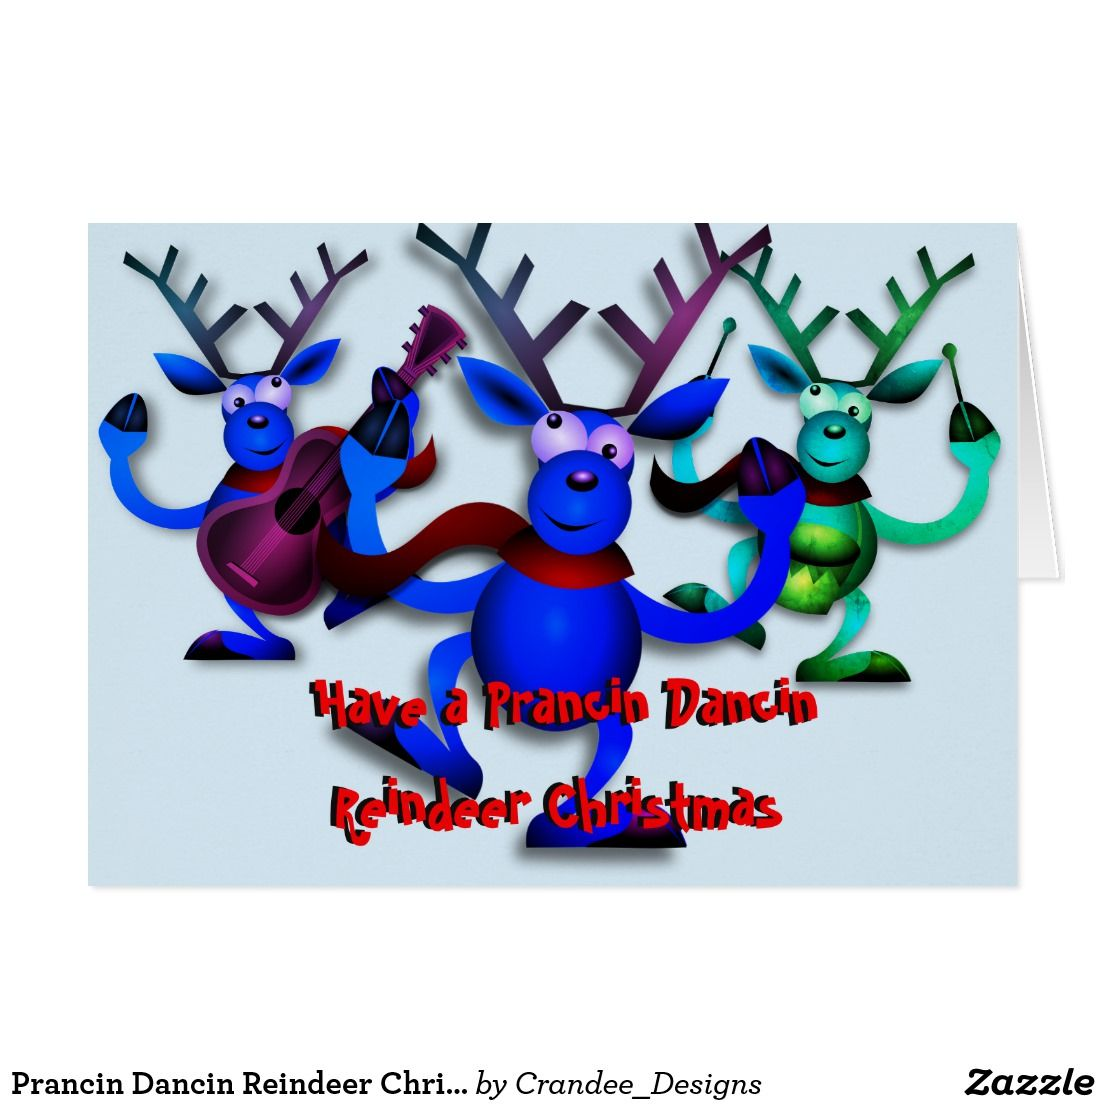 I Am Submitting This Card And Its Accessories For The 2017 Christmas Design  Contest. Please Wish Me Luck! This Christmas Card Will Have You Dancinu0027 And  ...